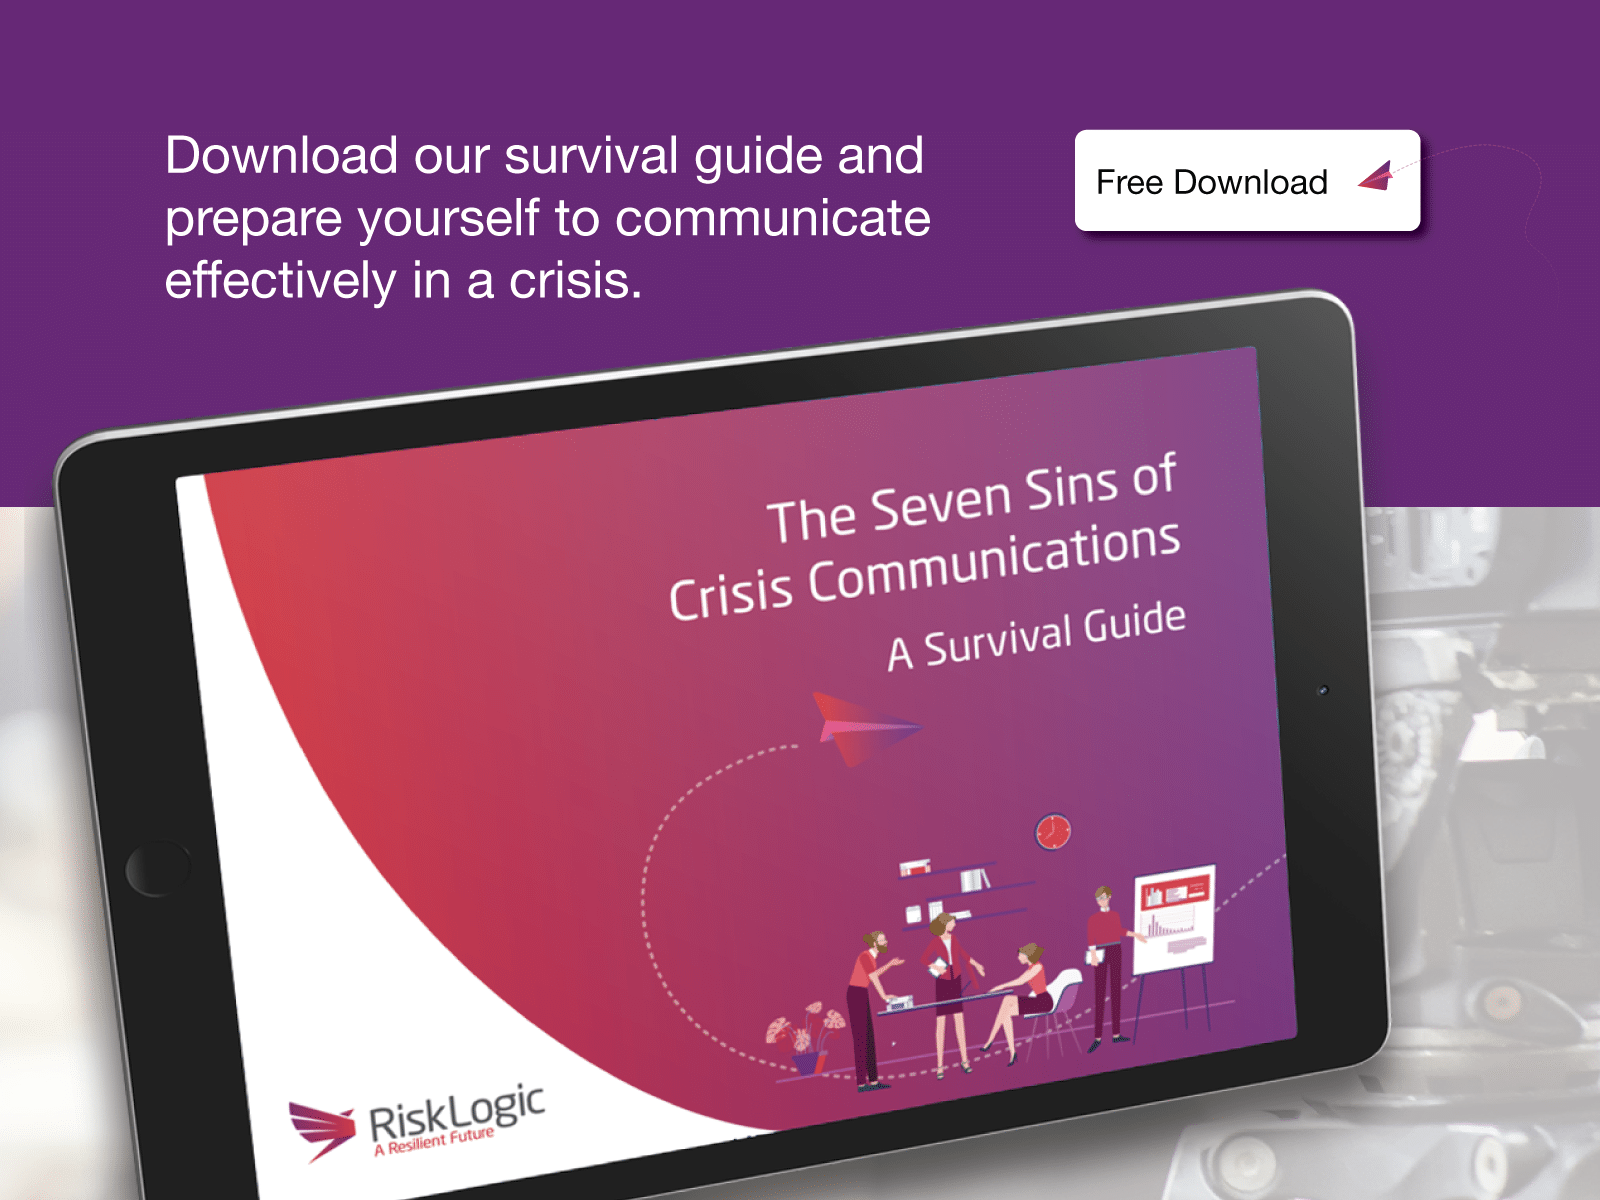 The seven sins of crisis communications